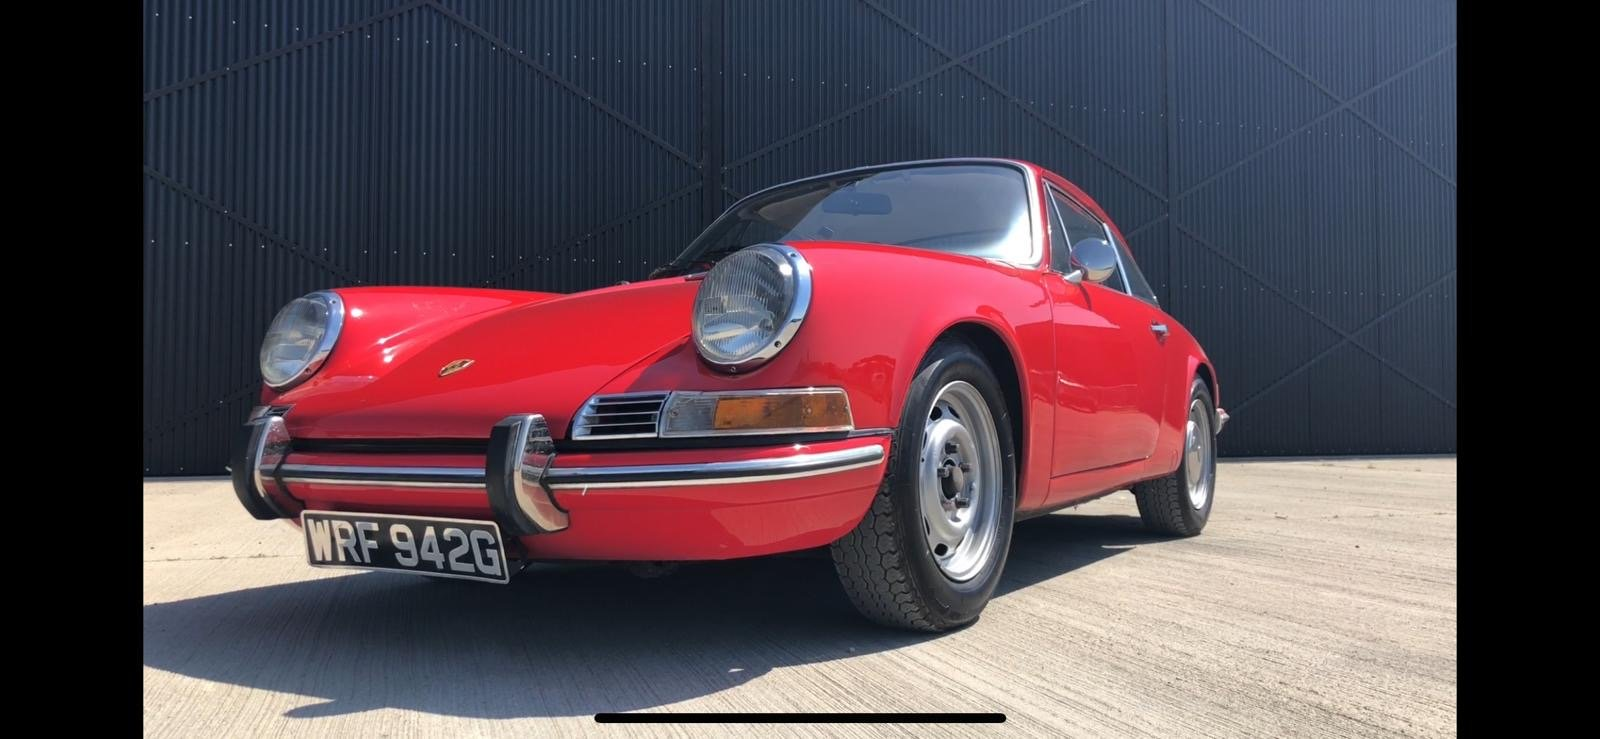 Porsche 911T RHD 1969 Sportamatic Coupe Red For Sale (picture 1 of 9)